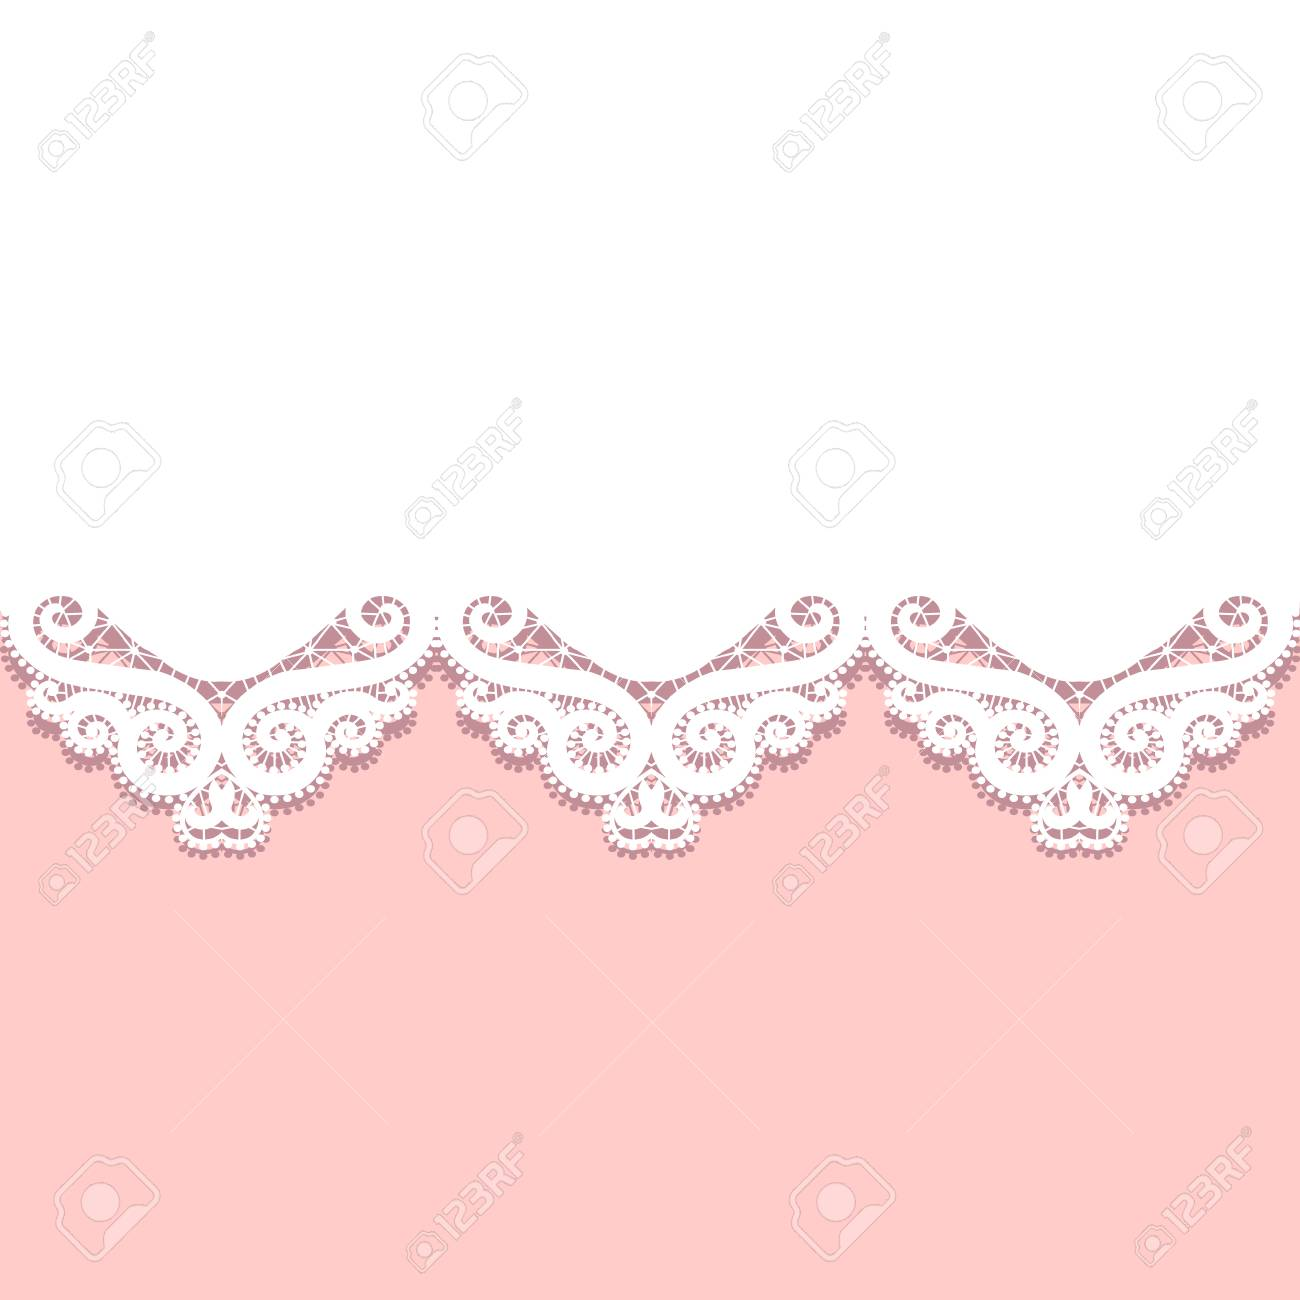 Wedding Invitation Template With Paper Lace Border Royalty Free ...